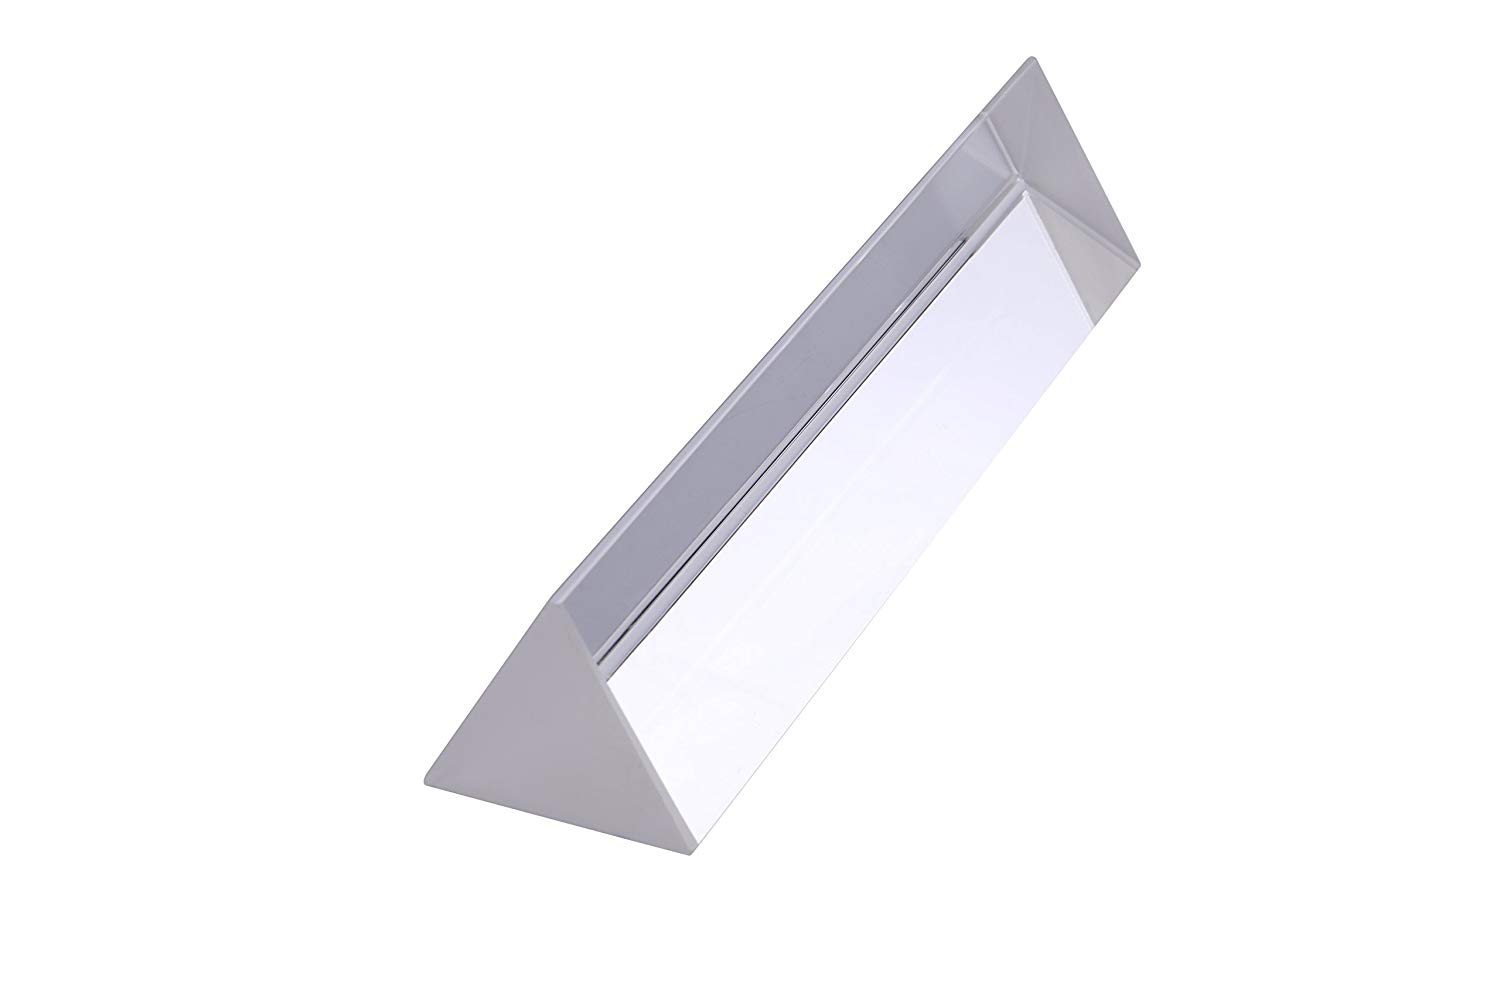 Sizet 6 inch Optical Glass Triangular Prism Triple Sided Prism Crystal Rainbow Maker Spectrum for Photography Science Physics Teaching